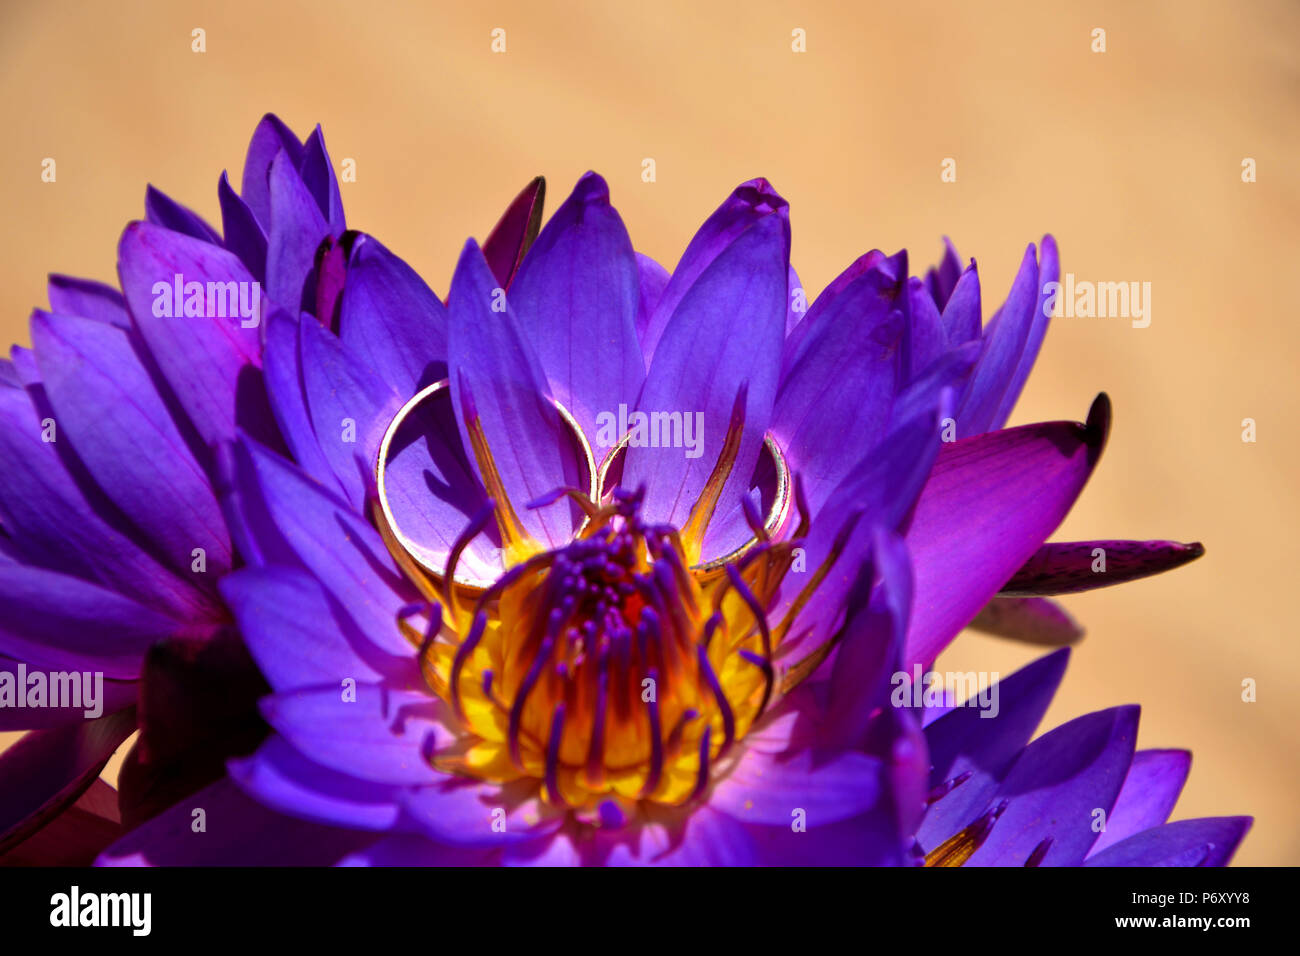 Gold wedding rings on beautiful purple lotus flowers on the foto of gold wedding rings on beautiful purple lotus flowers on the foto of sand close up a symbol of buddha a wedding a bond of marriage mightylinksfo